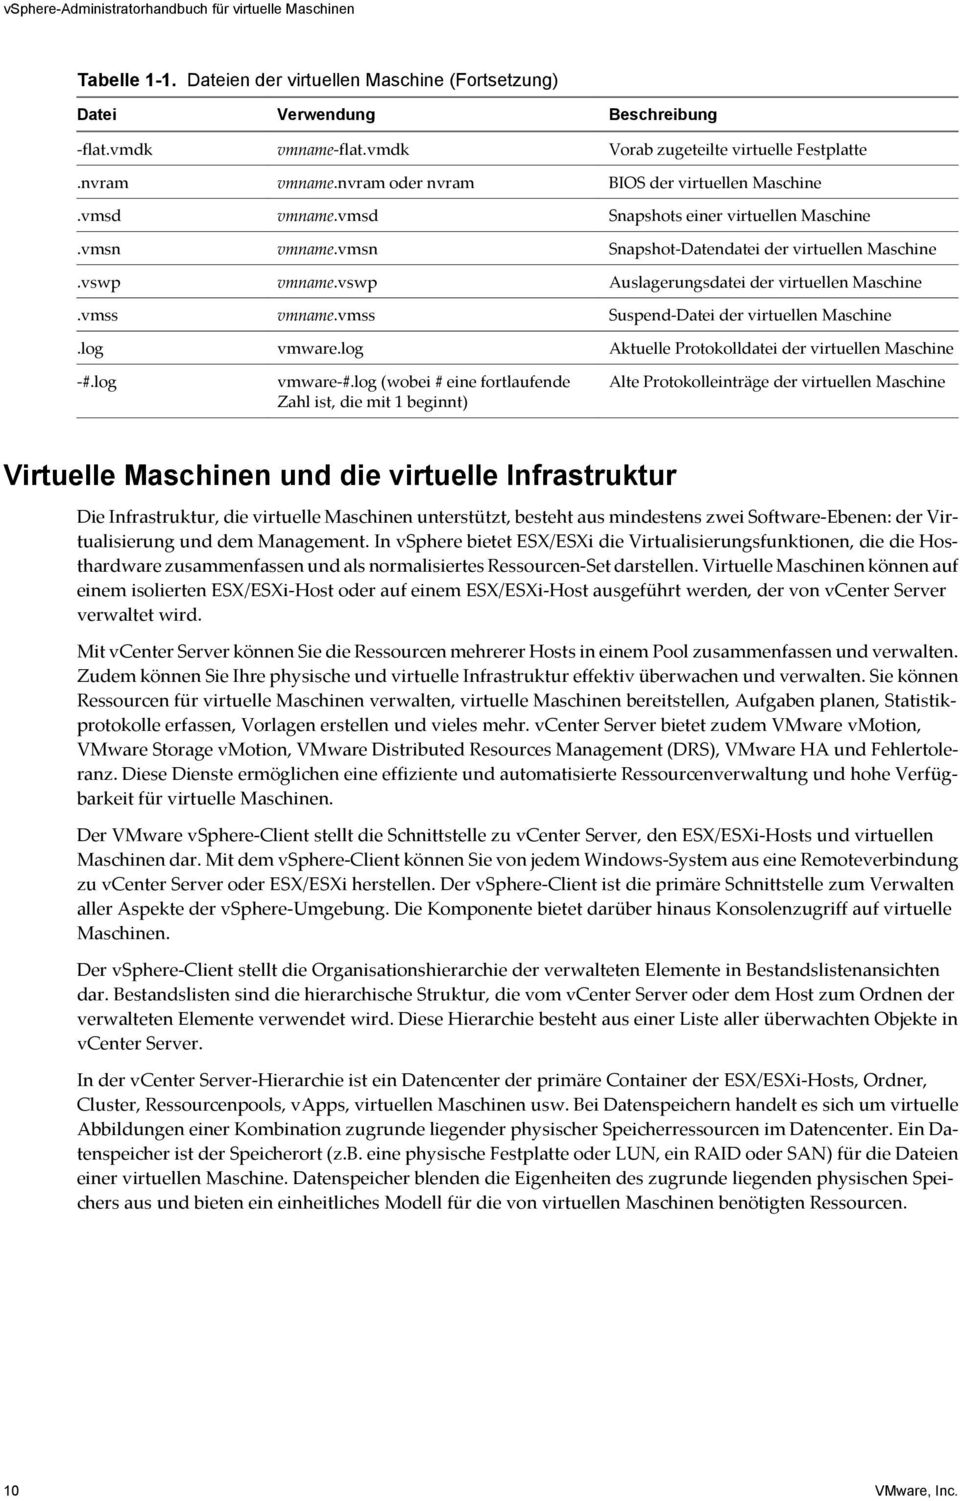 vmsn Snapshot-Datendatei der virtuellen Maschine.vswp vmname.vswp Auslagerungsdatei der virtuellen Maschine.vmss vmname.vmss Suspend-Datei der virtuellen Maschine.log vmware.